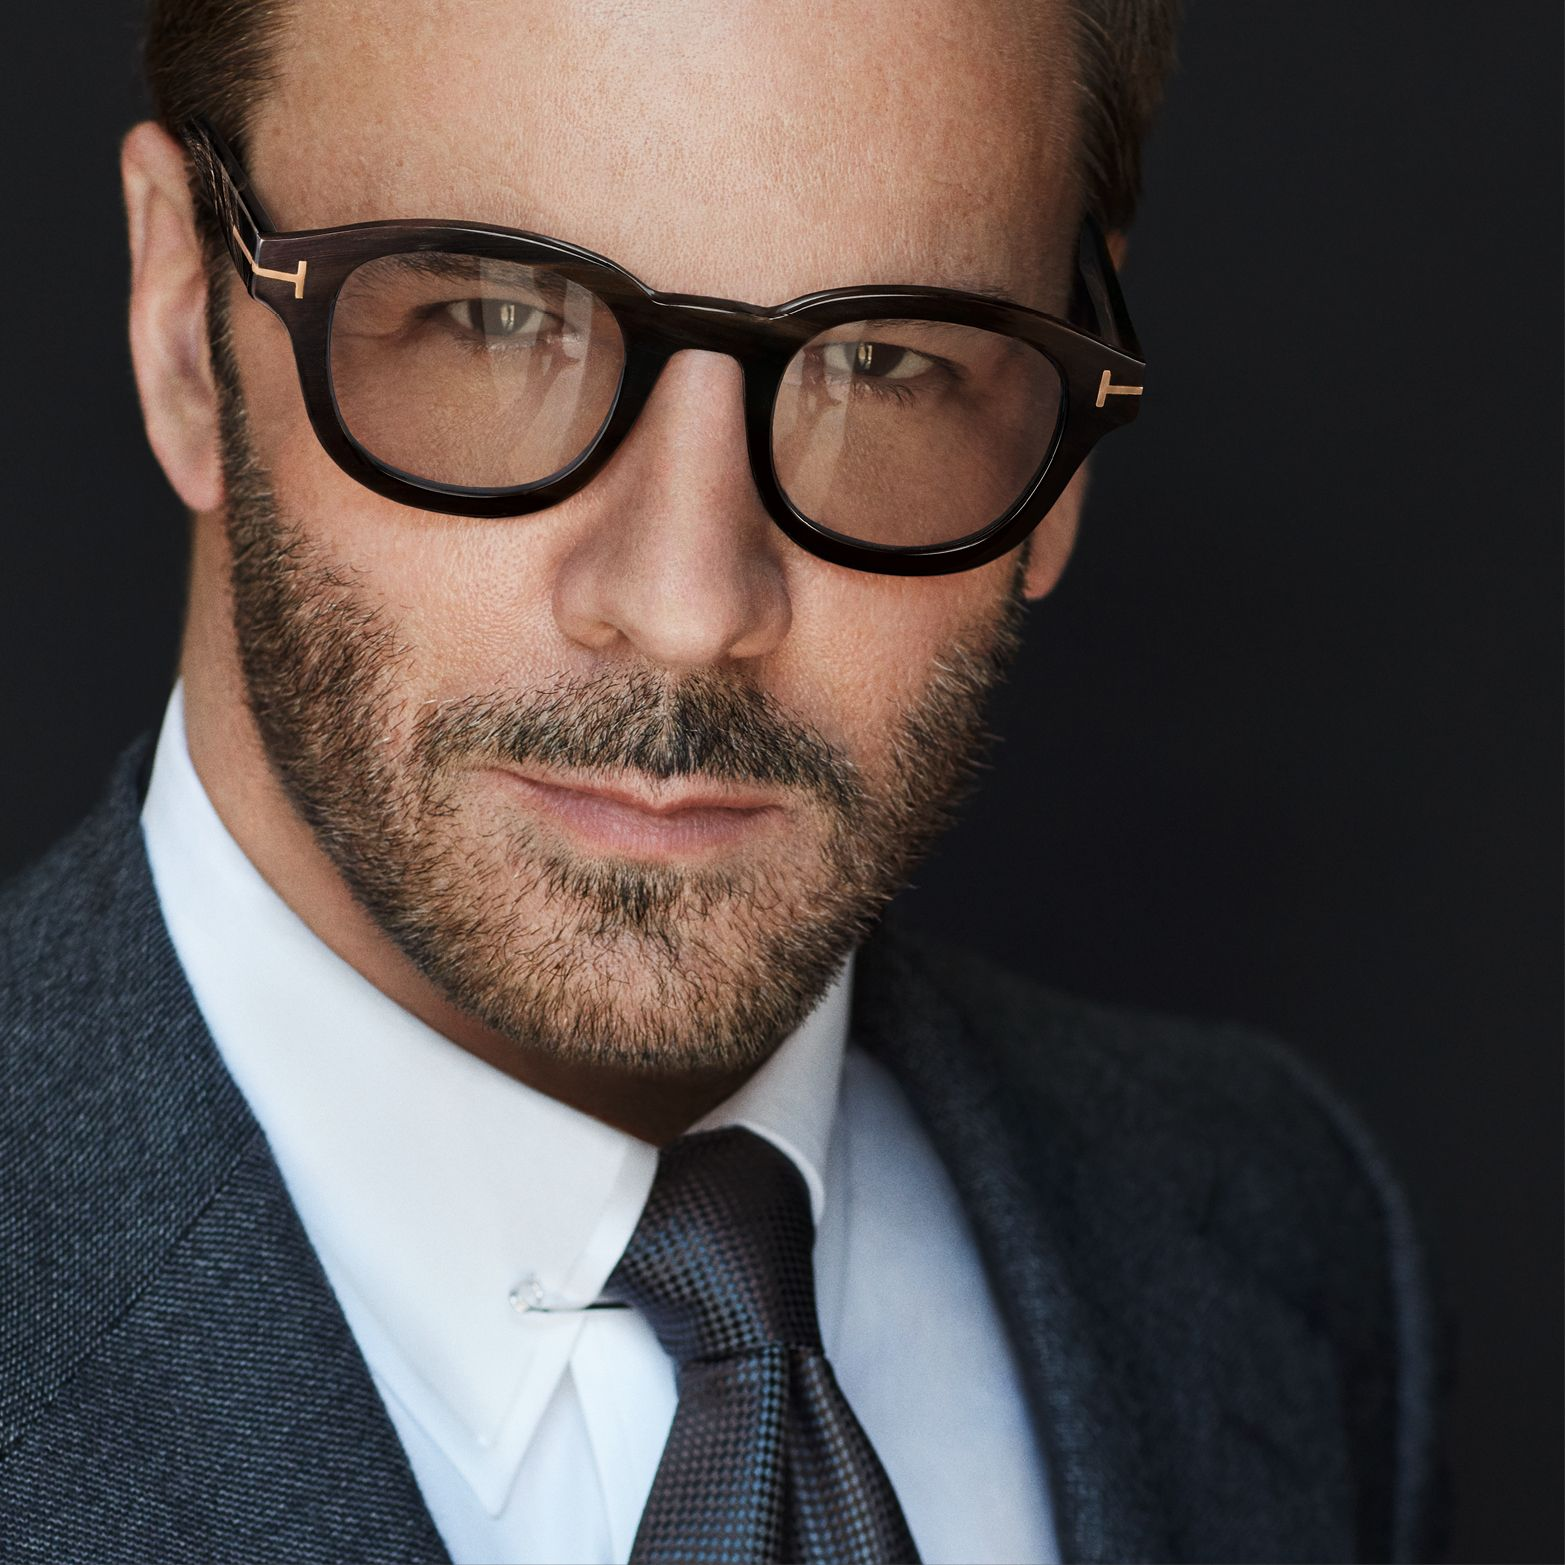 15c1e203e5a The TOM FORD Private Collection.  TOMFORD  TFPRIVATECOLLECTION